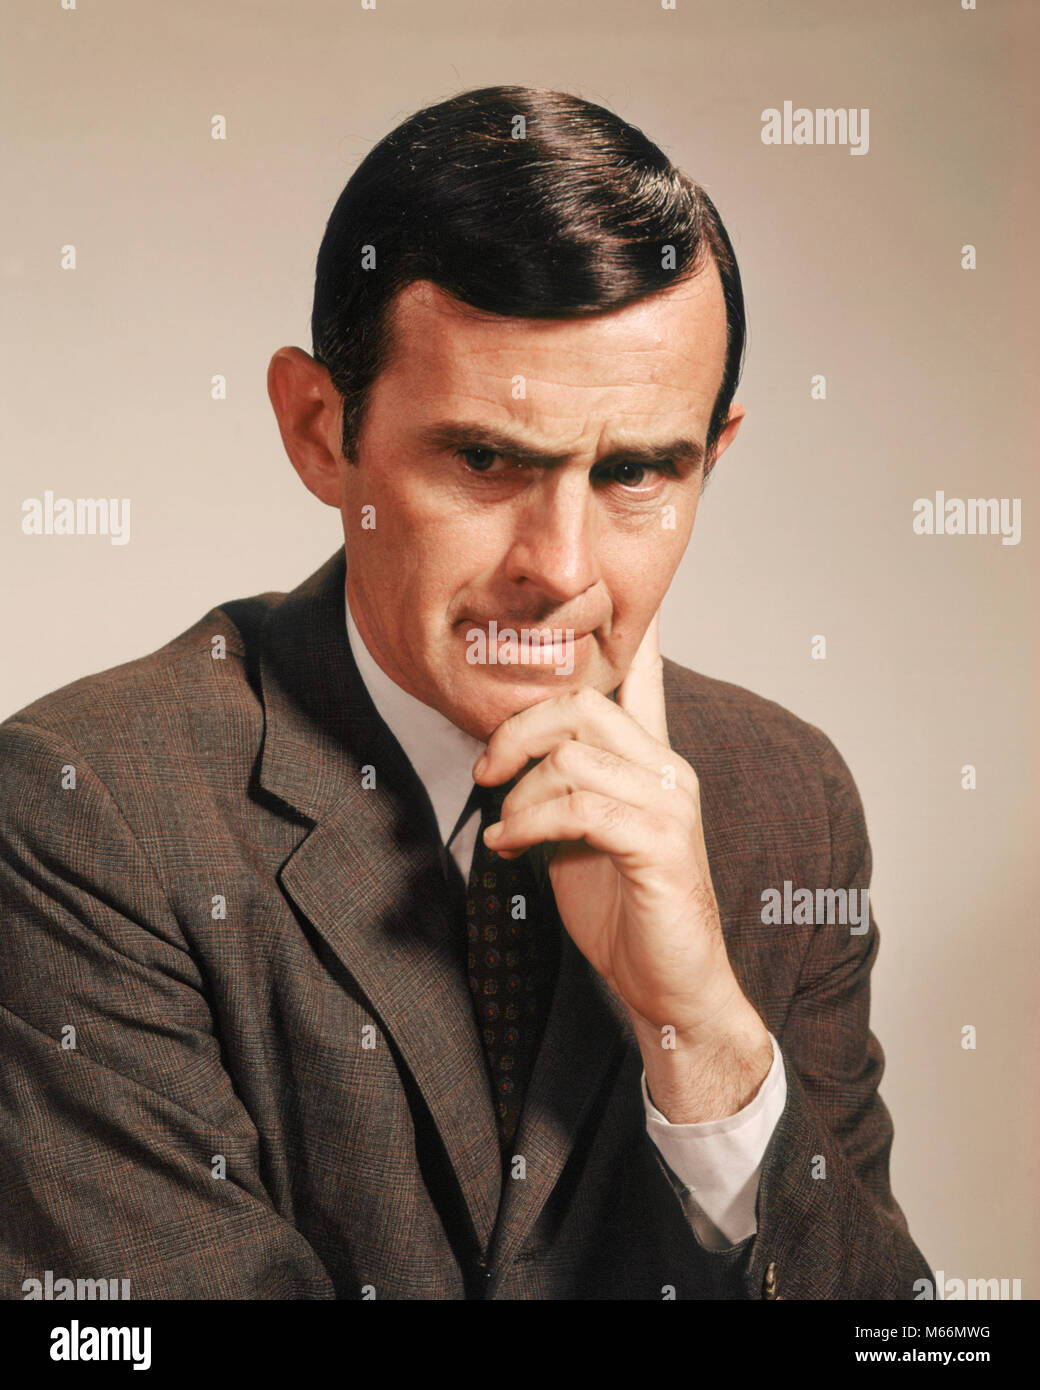 1960s PORTRAIT MAN WITH SERIOUS FACIAL EXPRESSION HAND AT CHIN HEAD DOWN LOOKING AT CAMERA - kp1371 HAR001 HARS - Stock Image